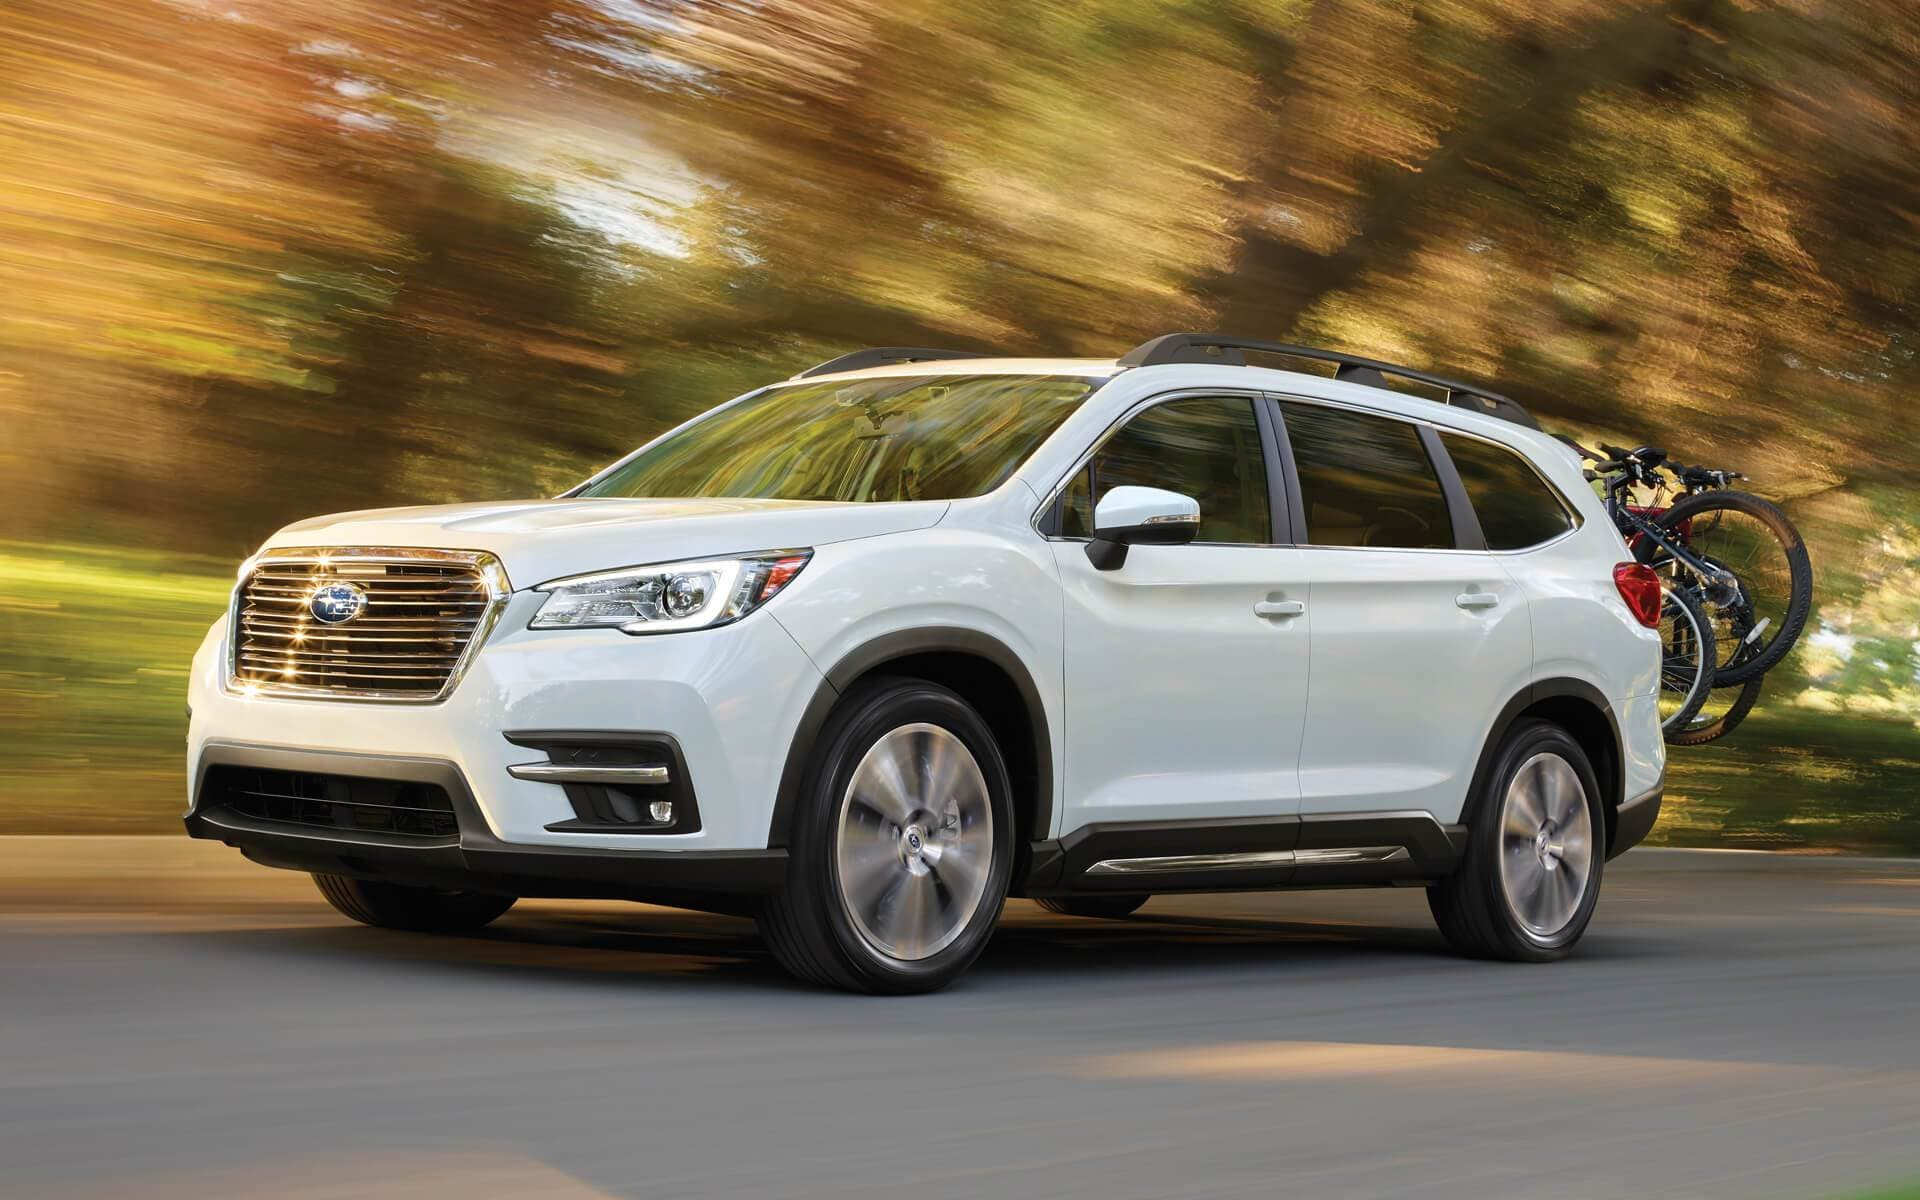 White Subaru Ascent